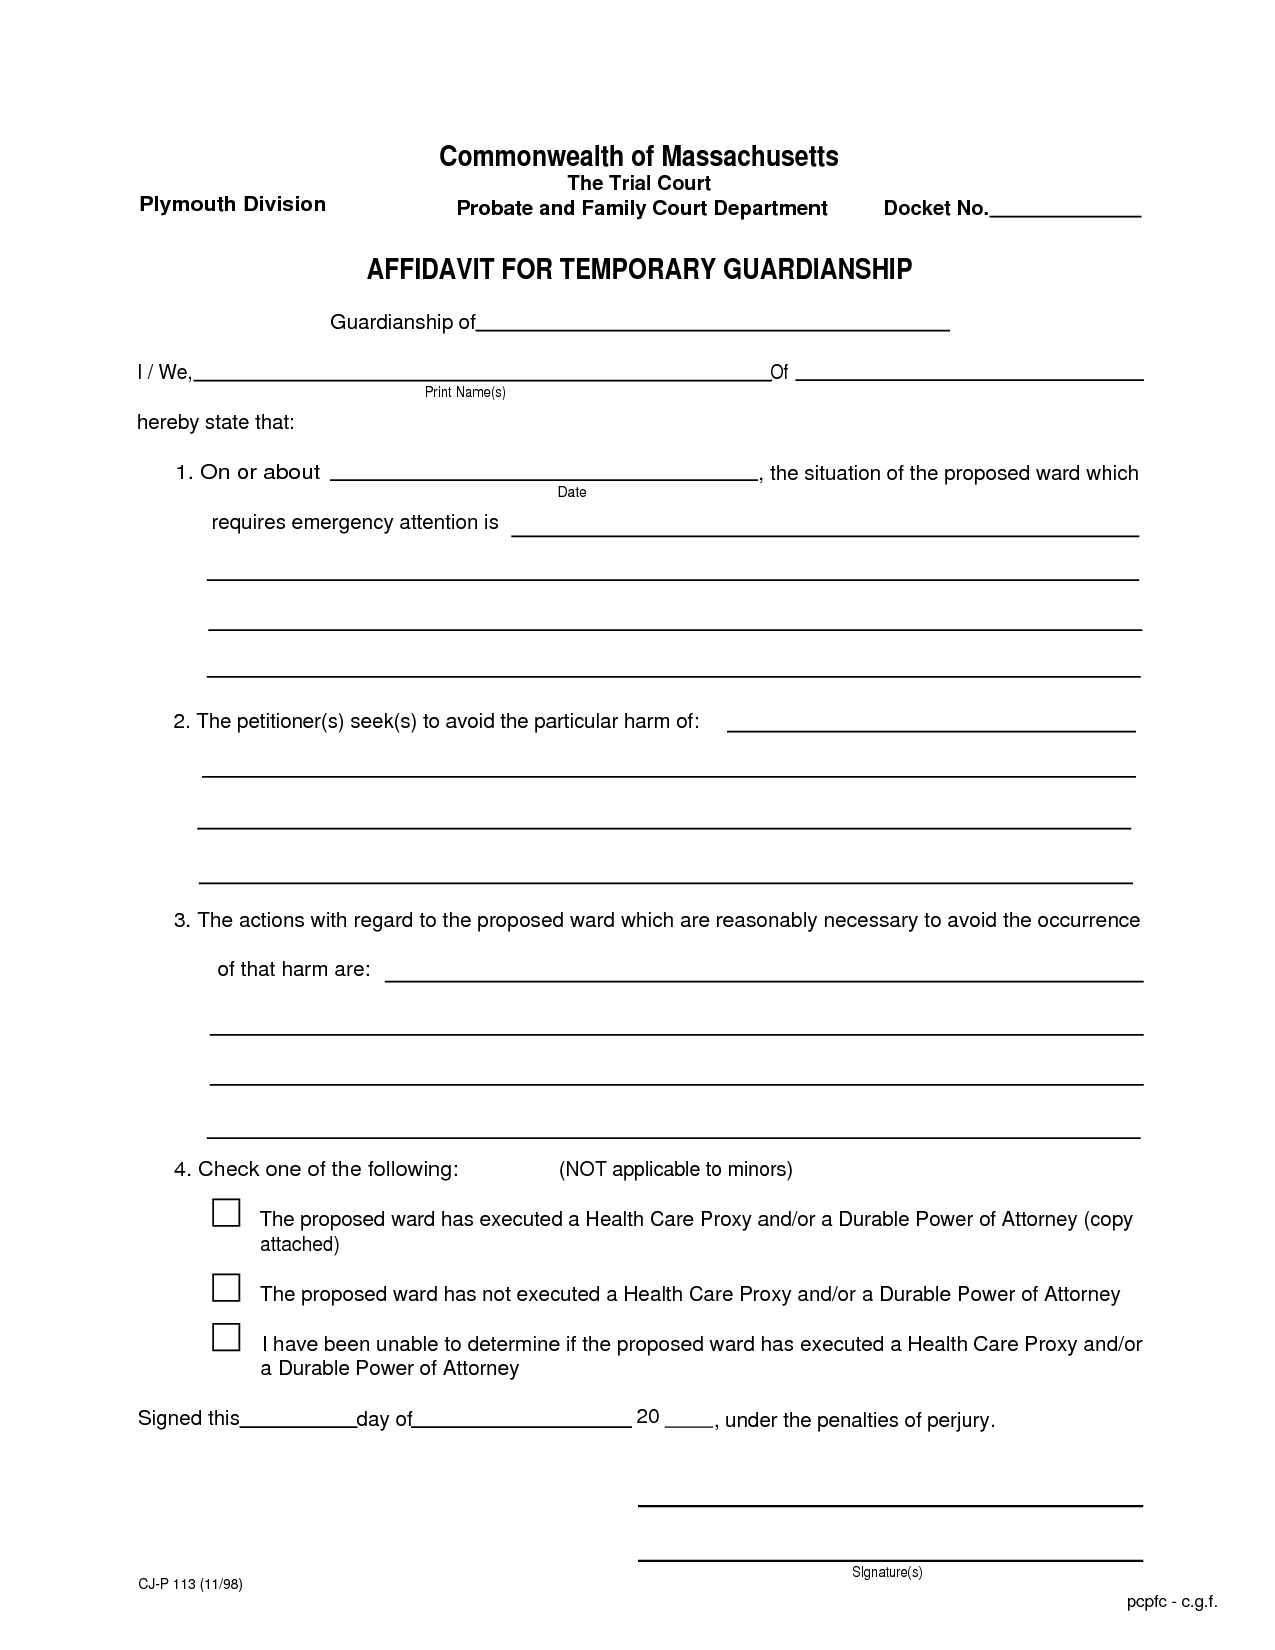 Legal Temporary Child Custody Agreement Form - Id97998 Opendata - Free Printable Temporary Guardianship Form